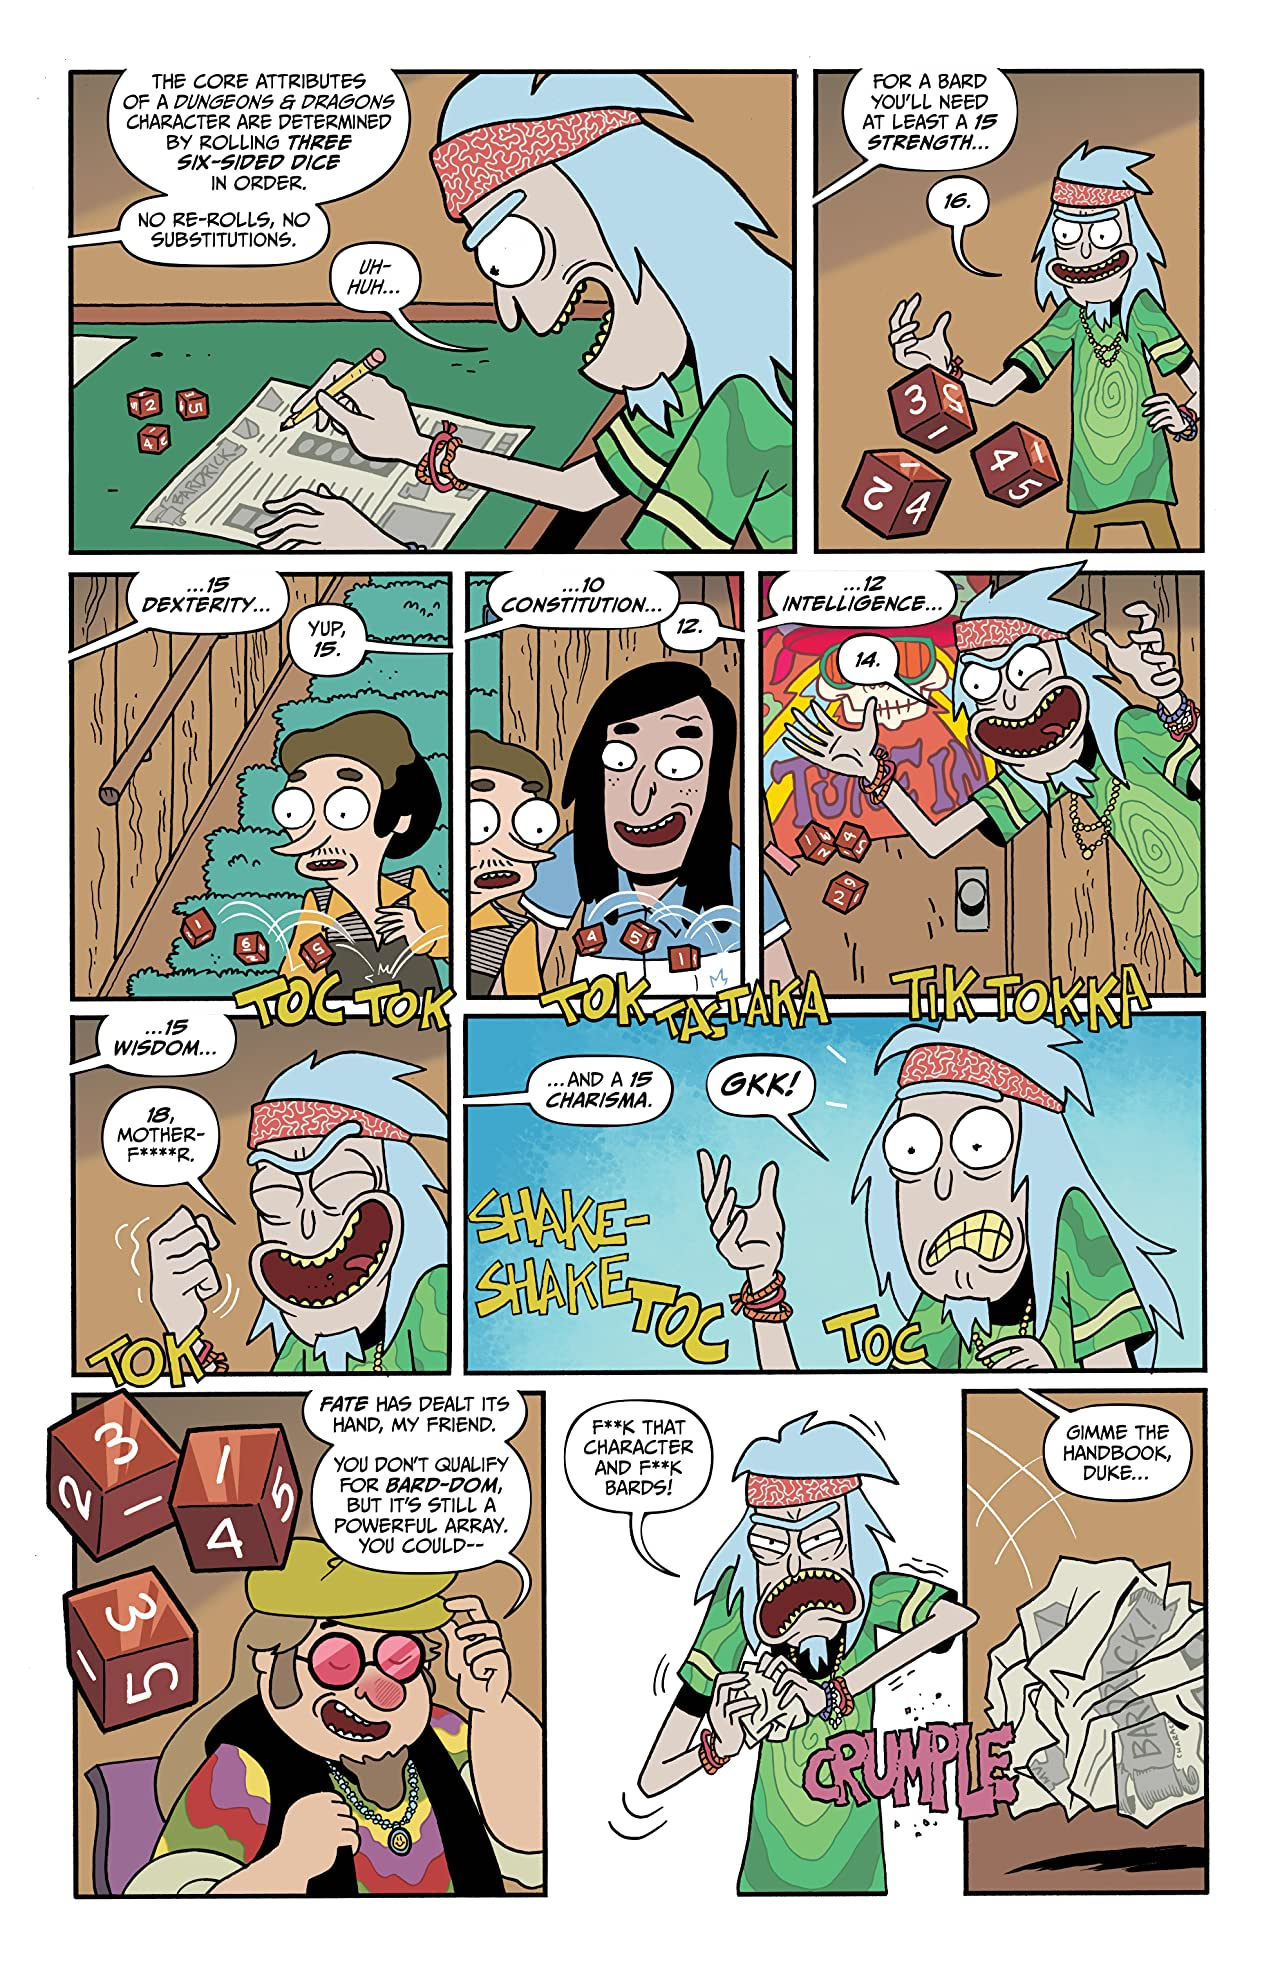 Rick and Morty vs. Dungeons & Dragons II #2: Painscape